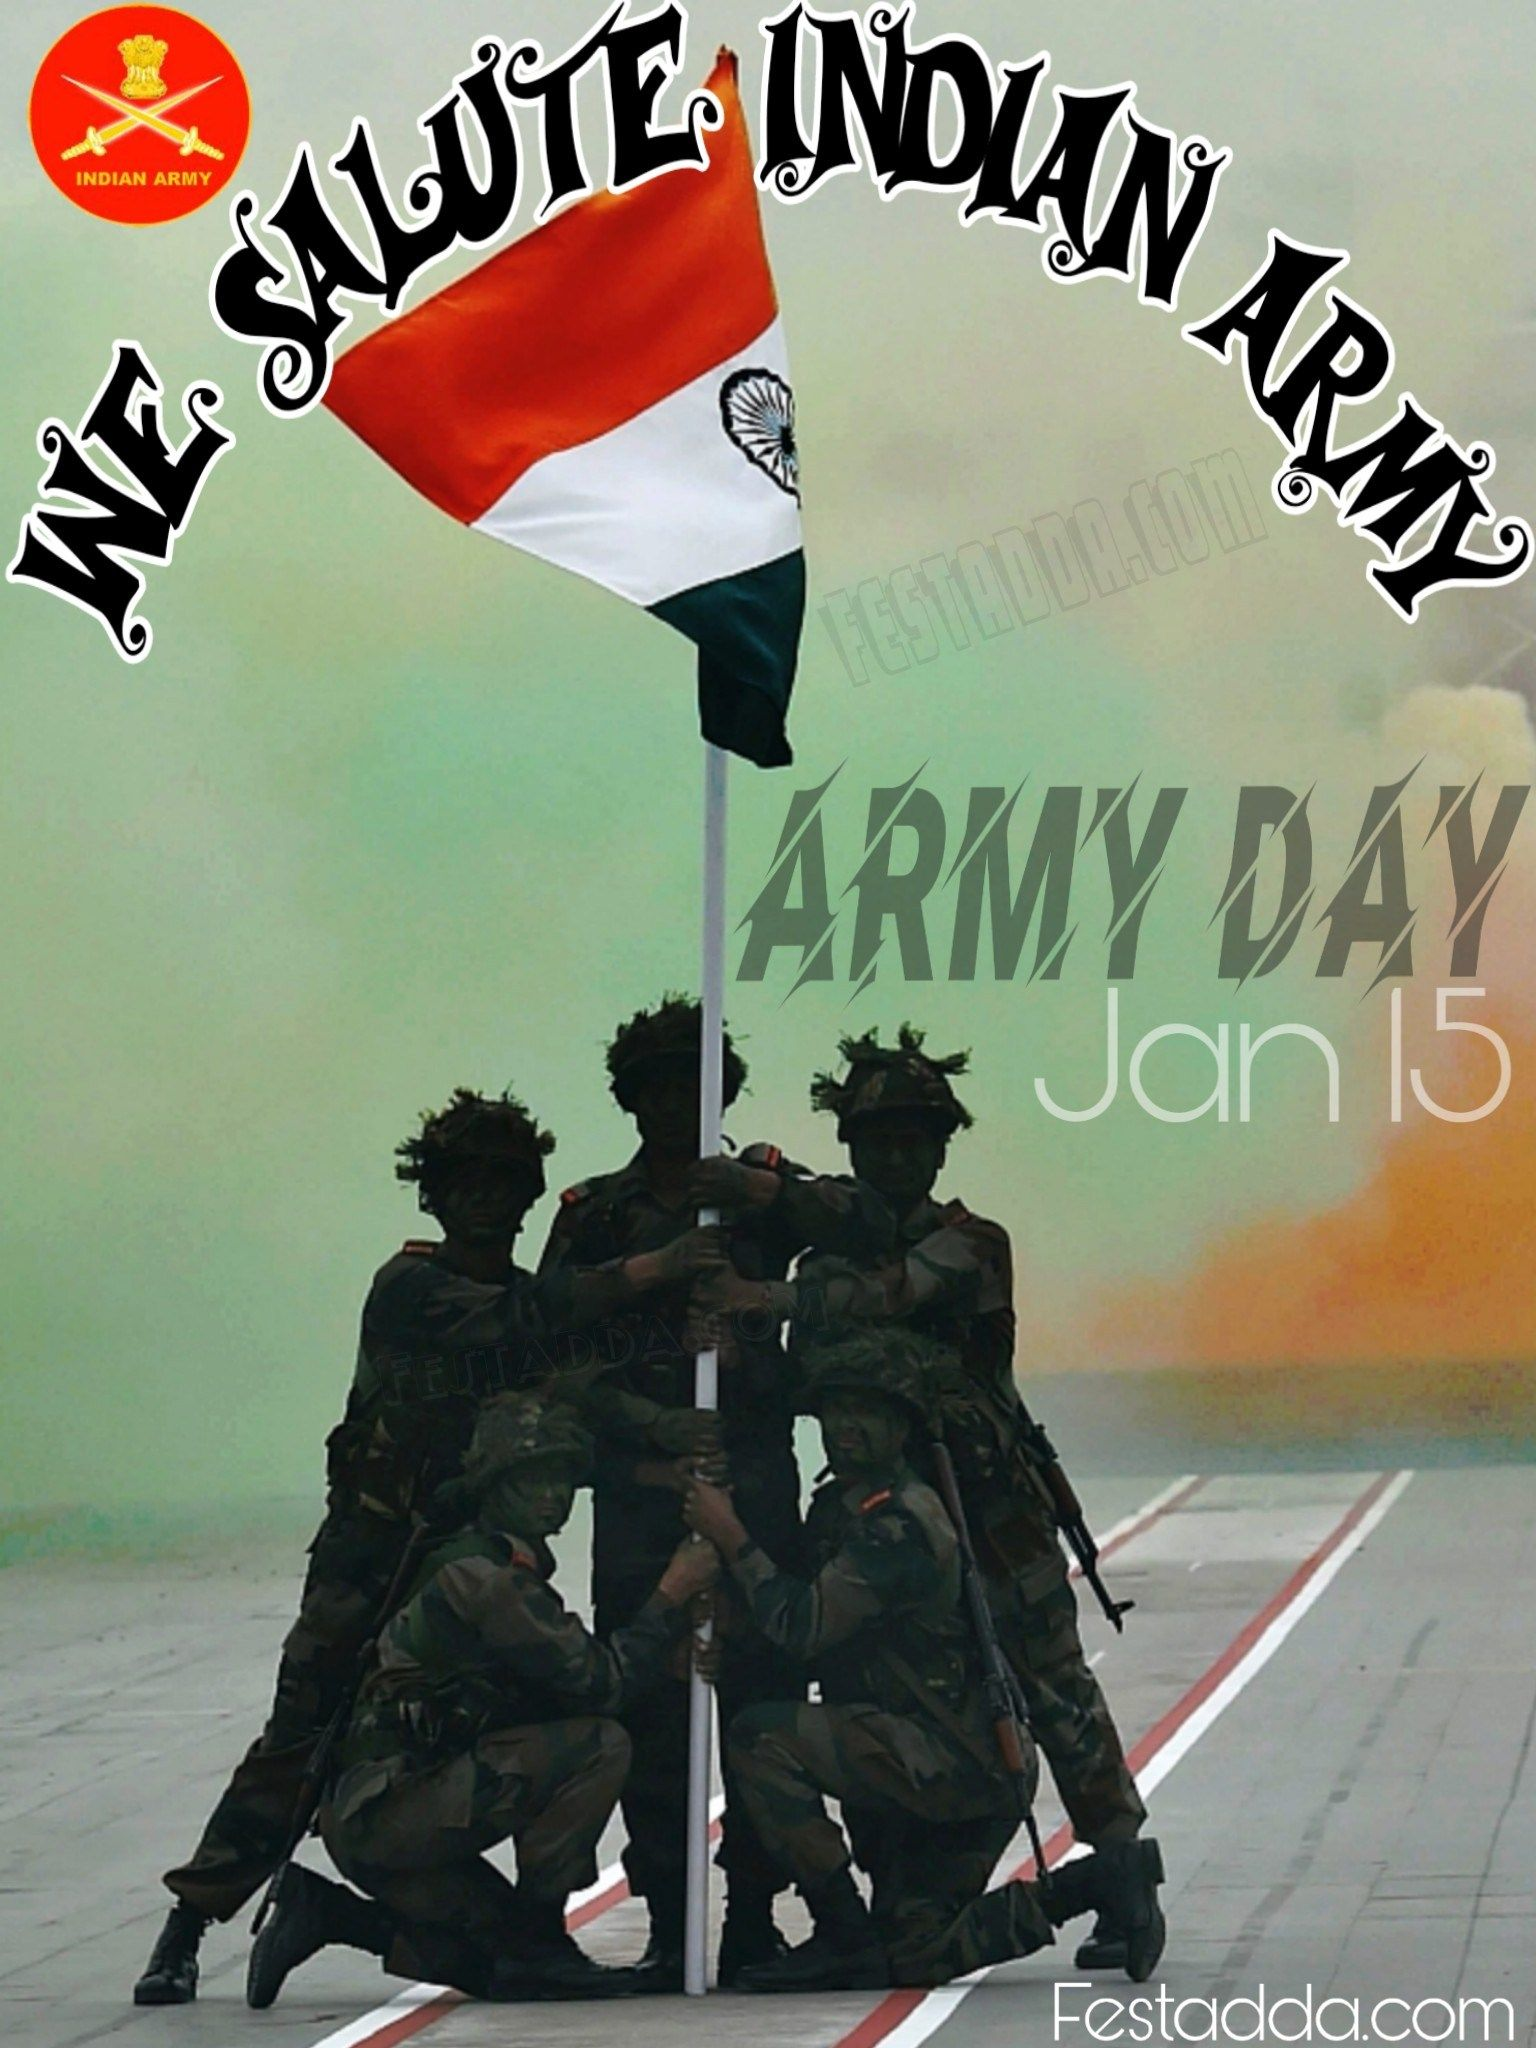 Indian Army Photos 2019 Indian Army Wallpapers Army Images Army Day